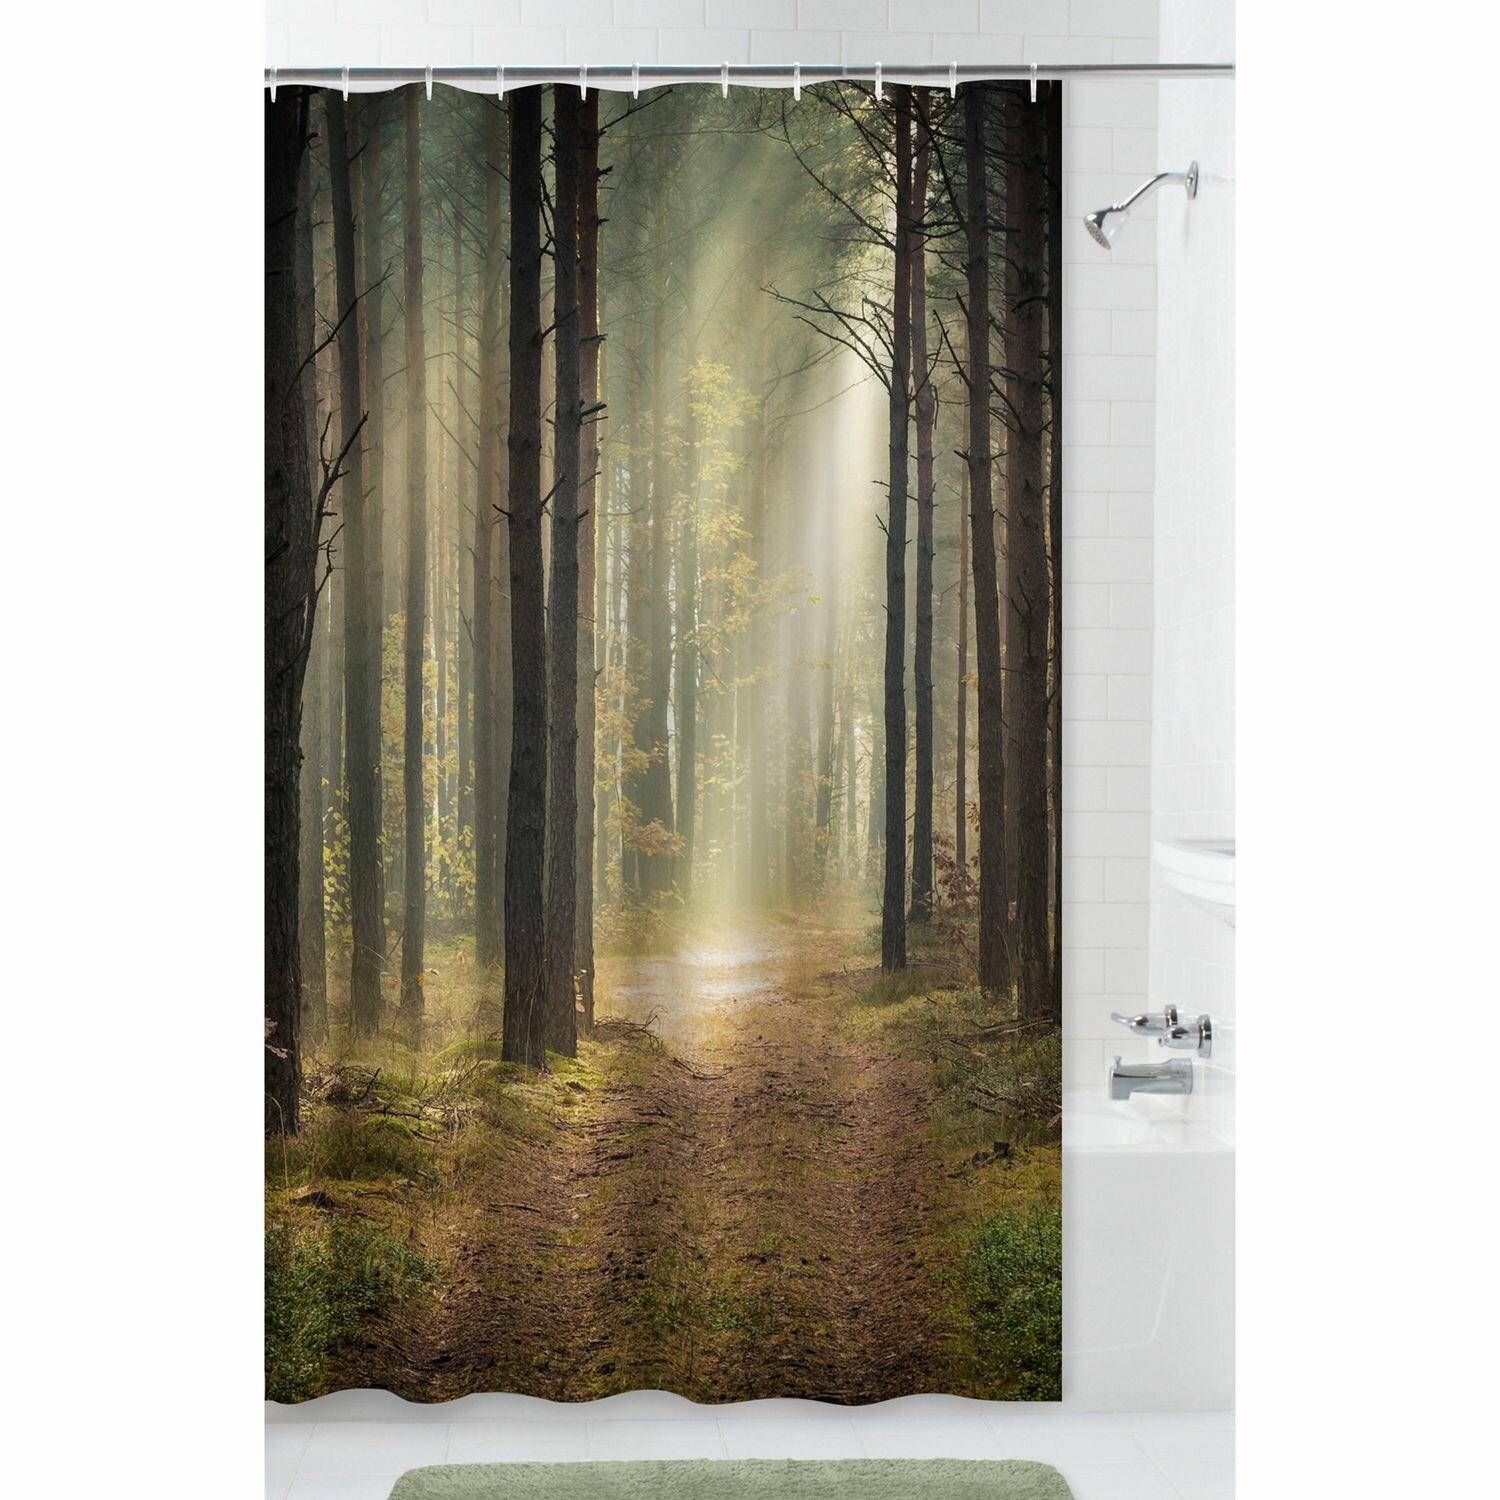 Shower Curtain Rings Walmart | Walmart Shower Curtain | Matching Bathroom Window And Shower Curtains